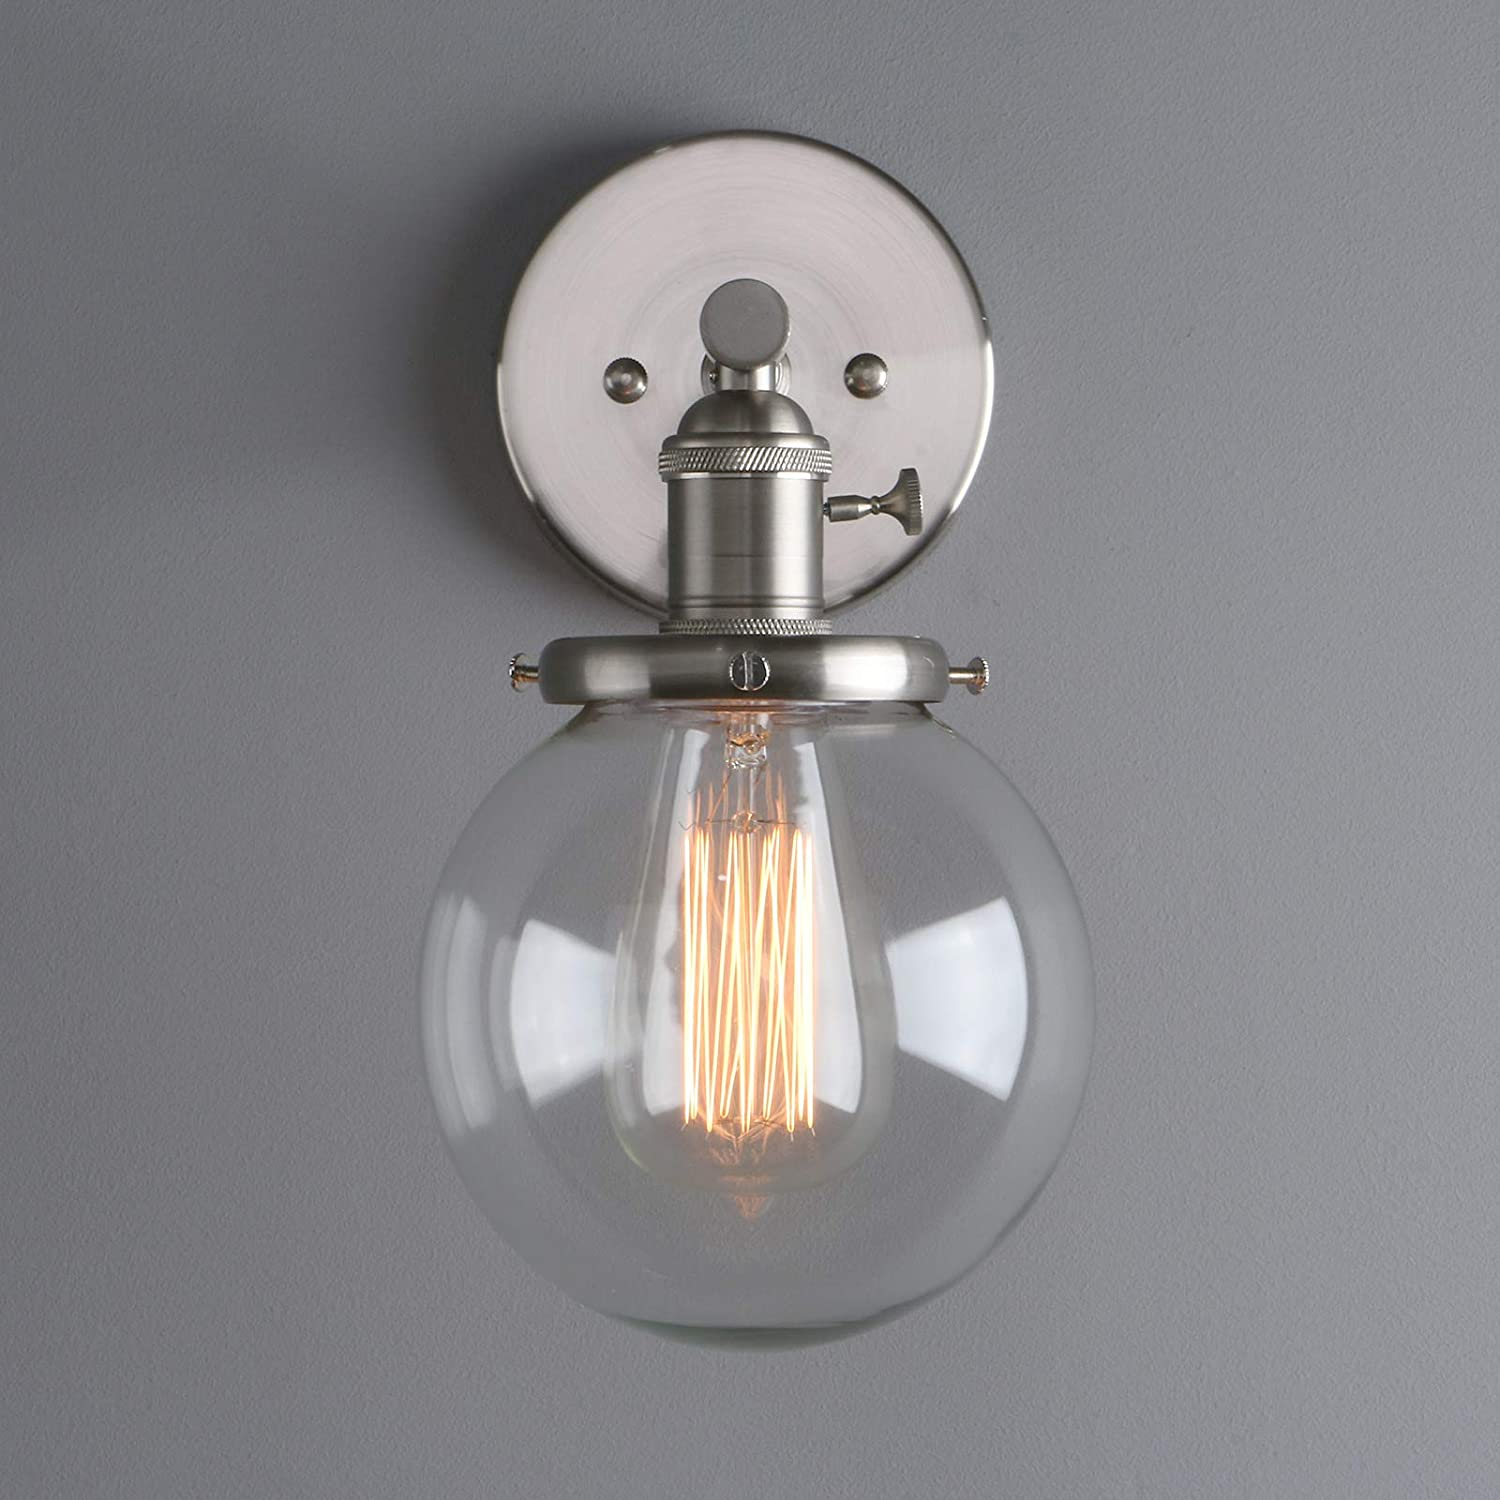 Phansthy Industrial Wall Light Globe Wall Sconce with 5.9 Inch Clear Glass Canopy Chrome